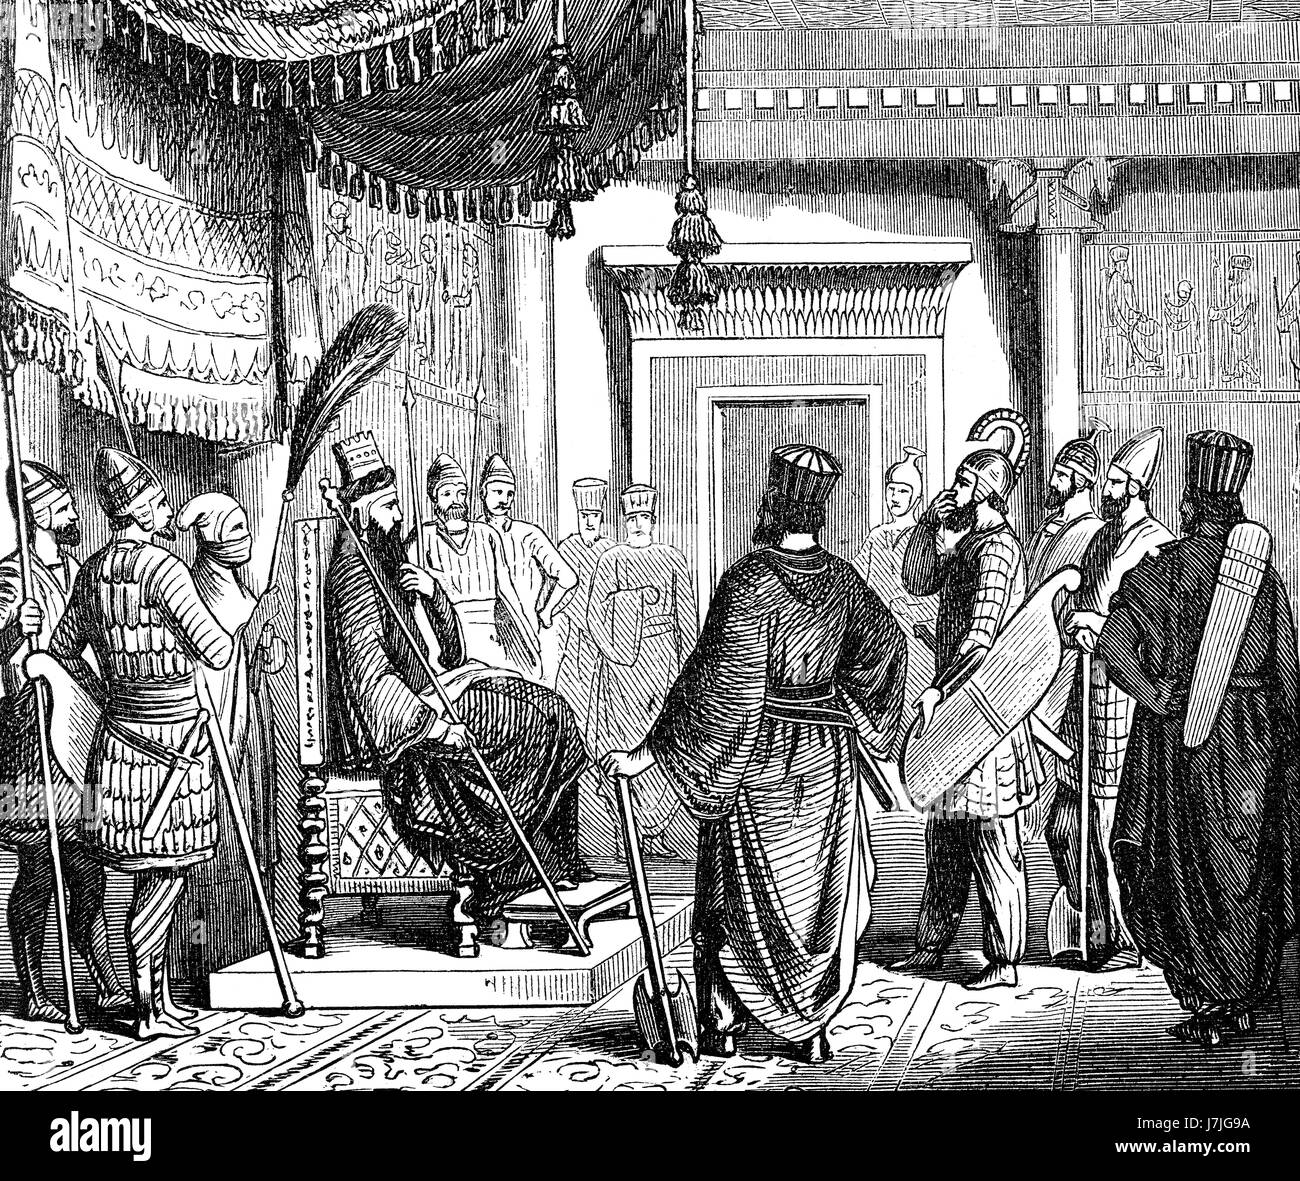 Cyrus the Great, king of the Persian Achaemenid Empire - Stock Image